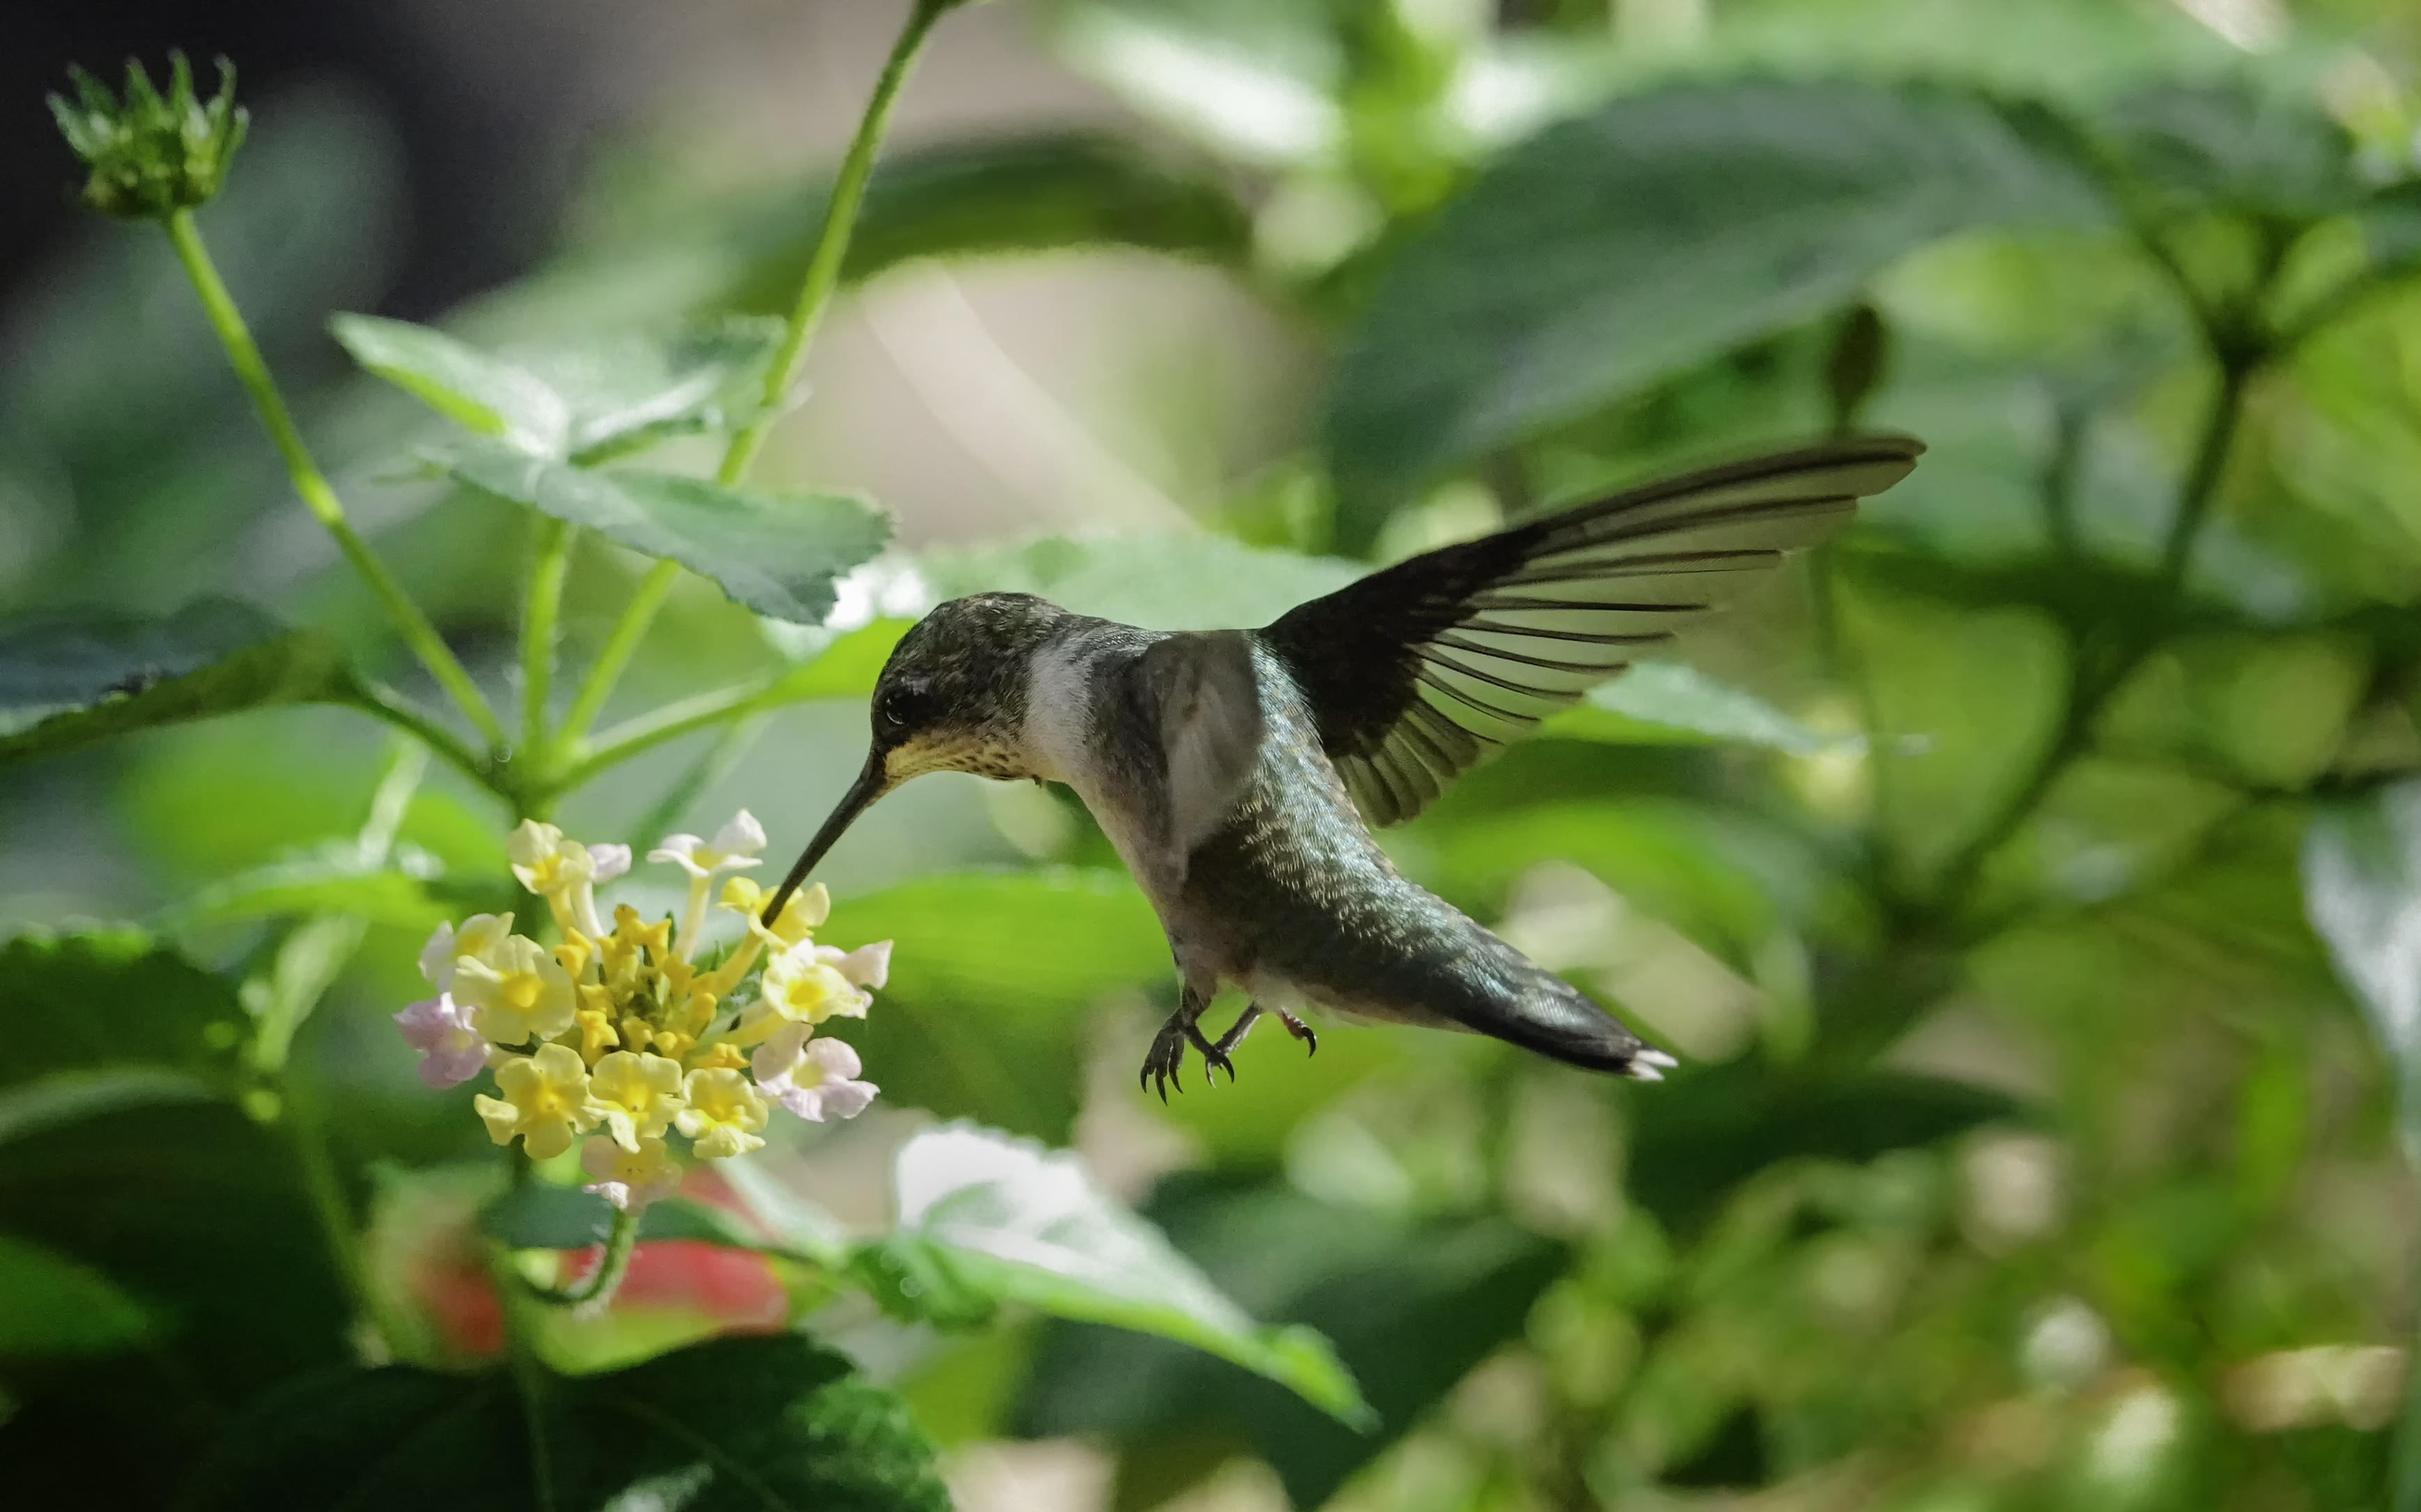 Divine Inspiration Photo #22A - Ruby-Throated Hummingbird #2 - 8 x 10